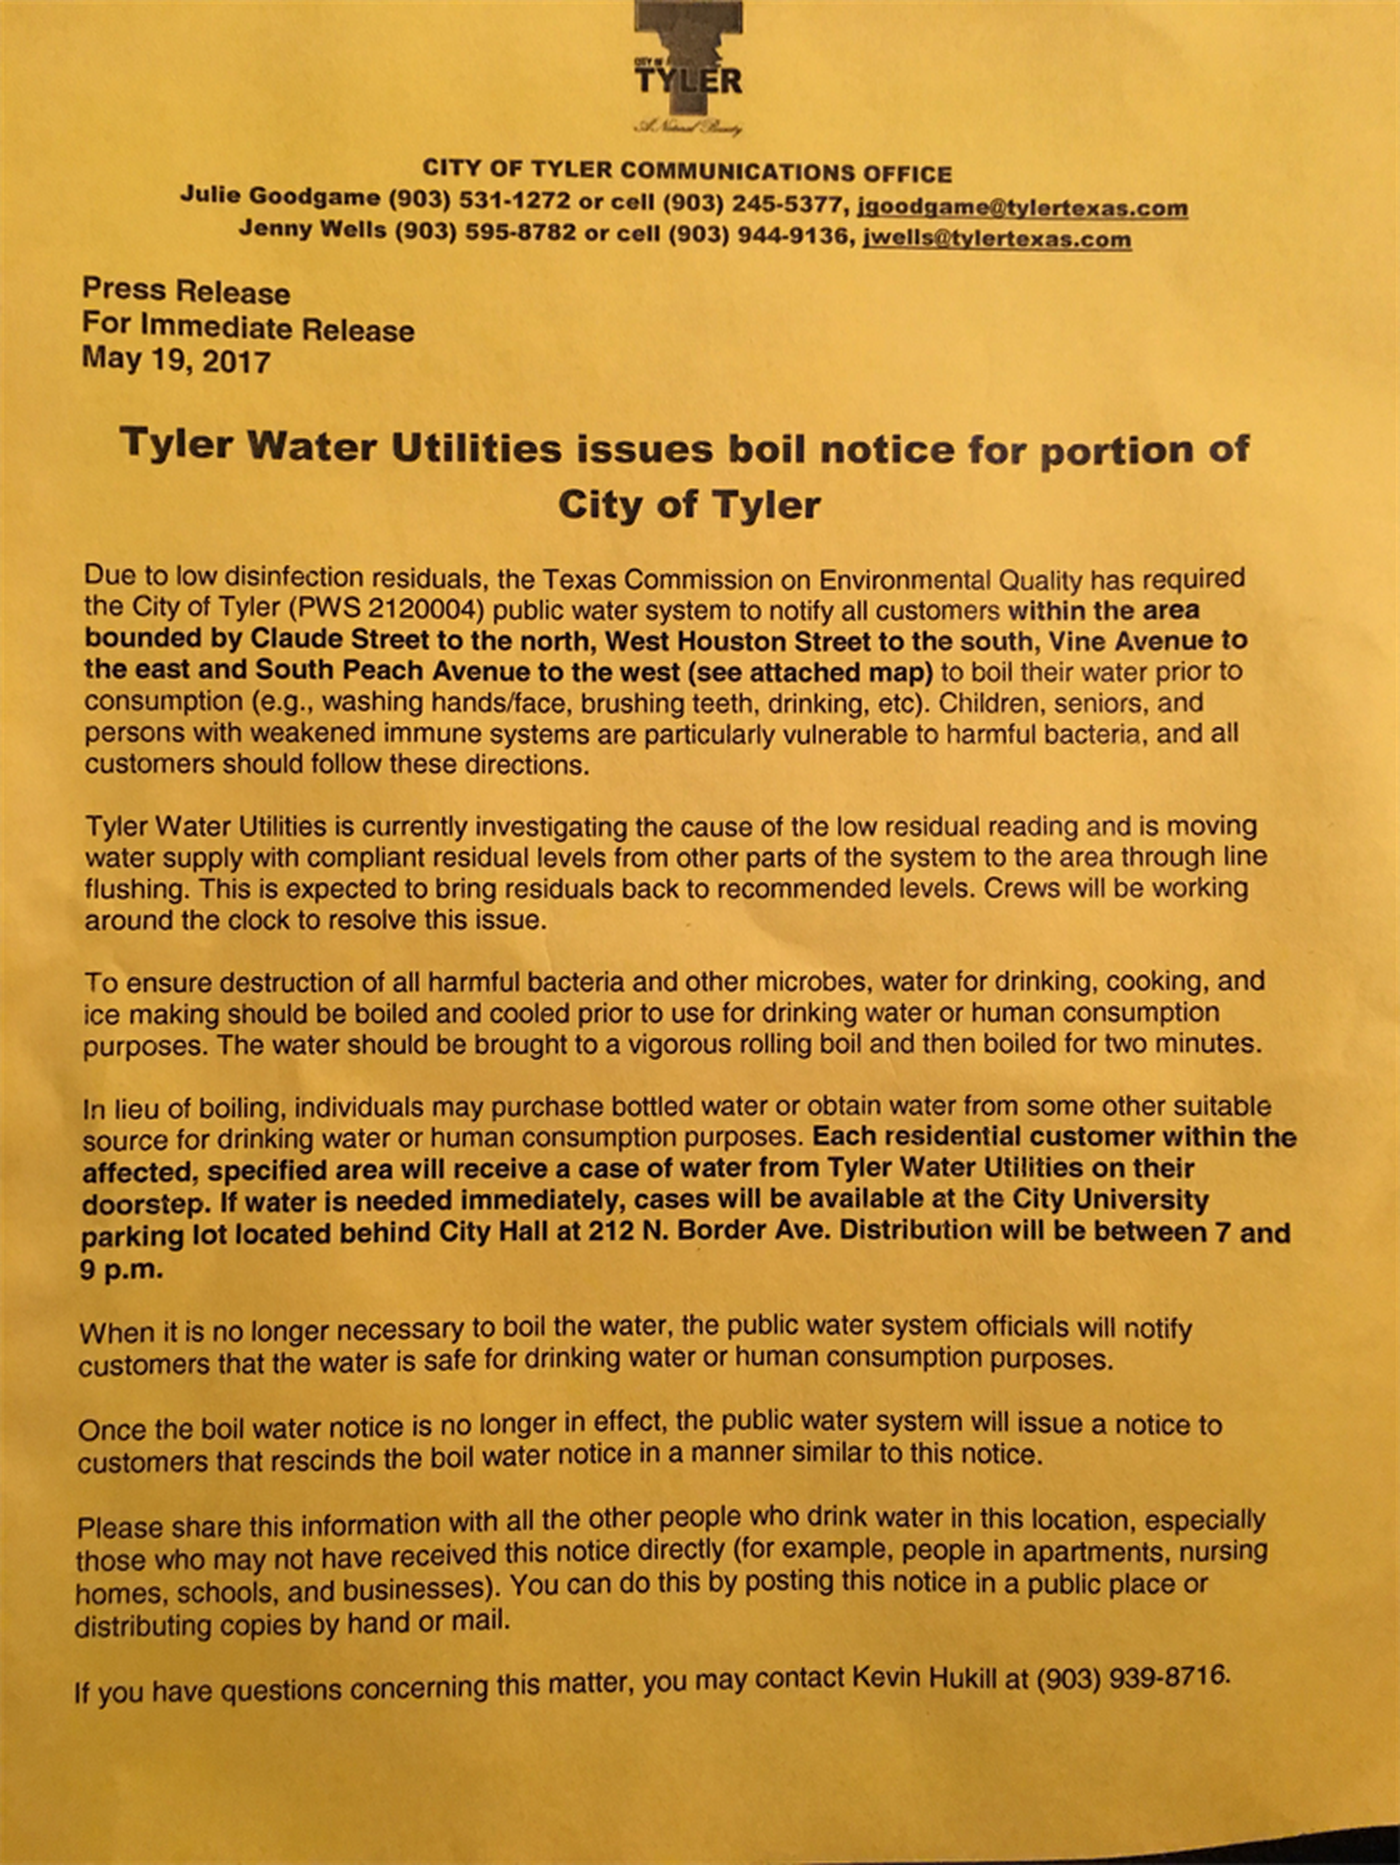 Tyler Water Utilities issues boil water notice for portion of City